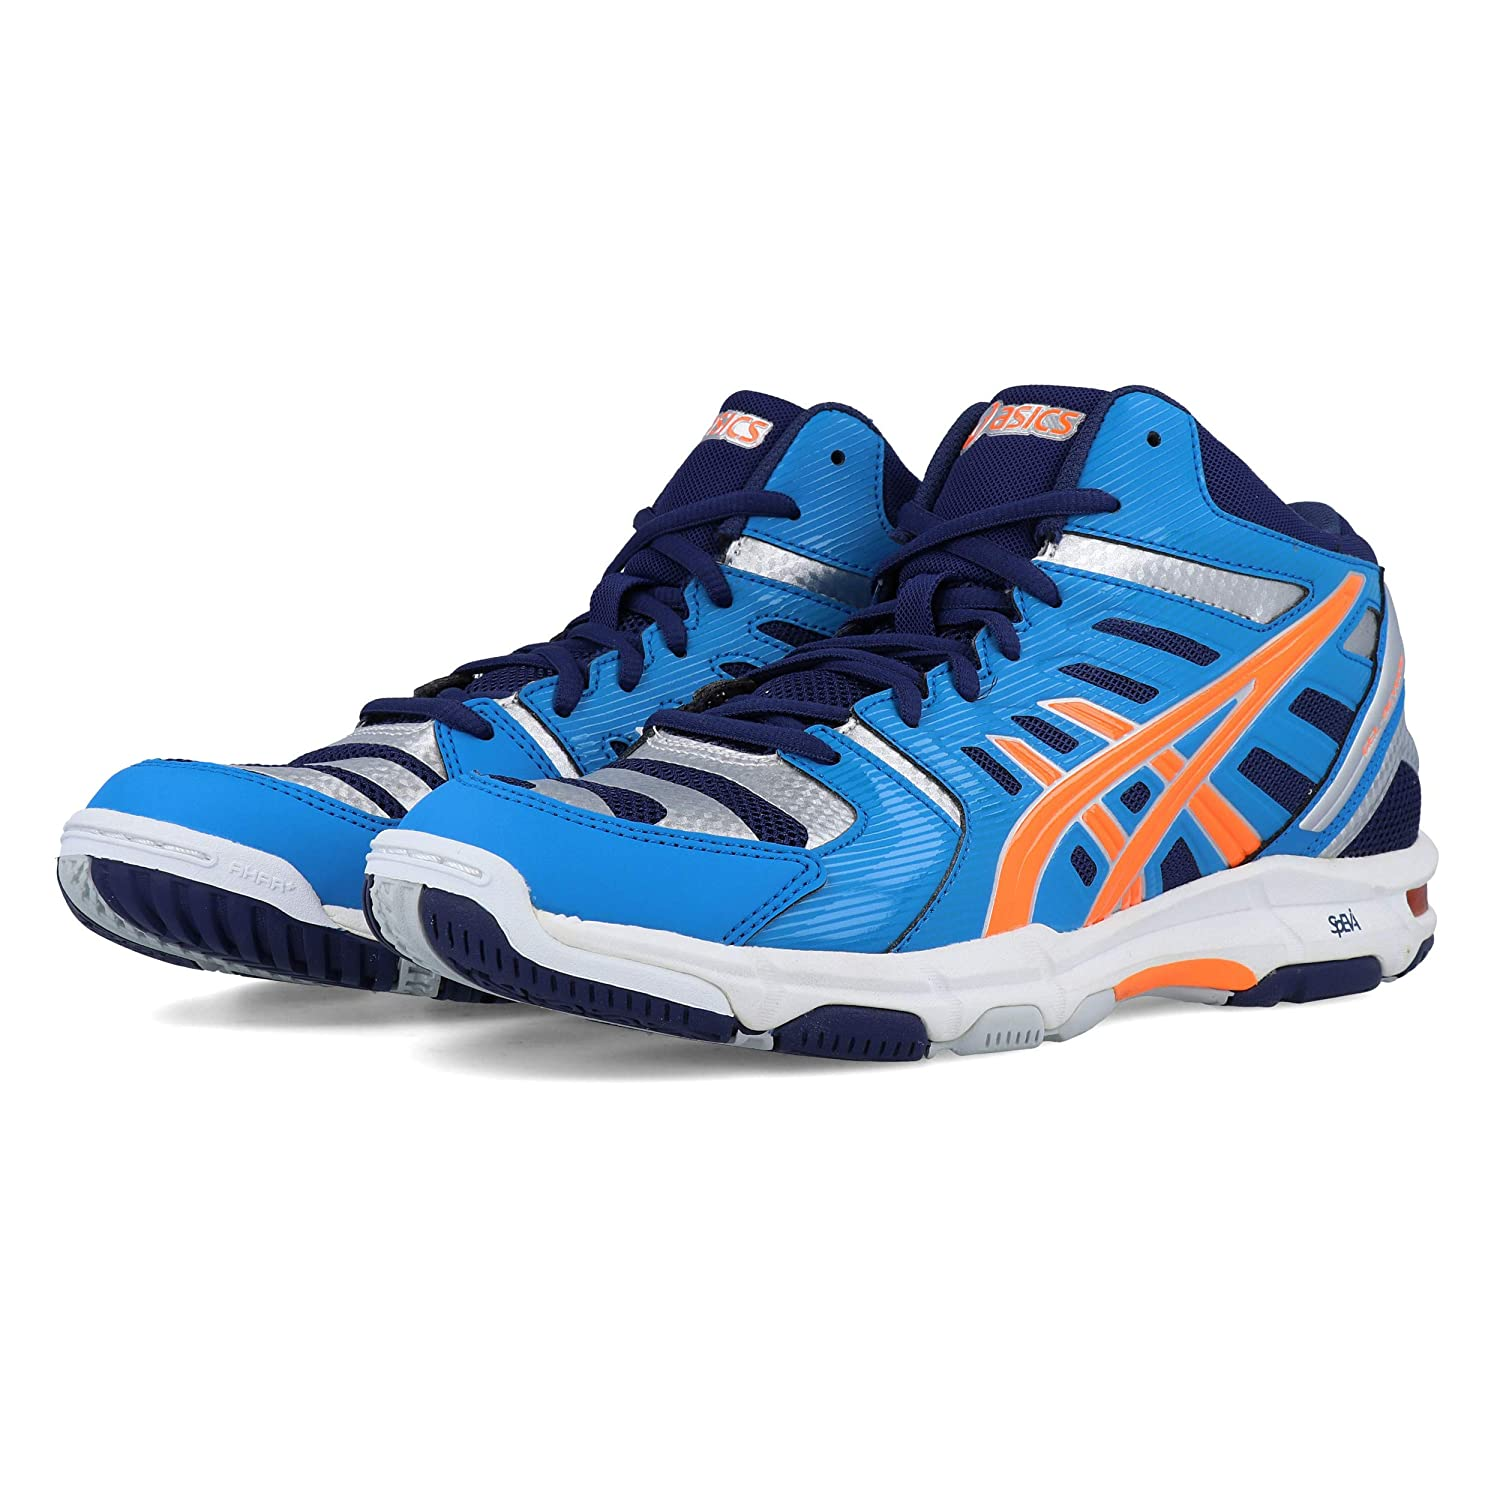 ASICS Unisex Adults Gel Beyond 4 Mt B403n 4130 Volleyball Shoes